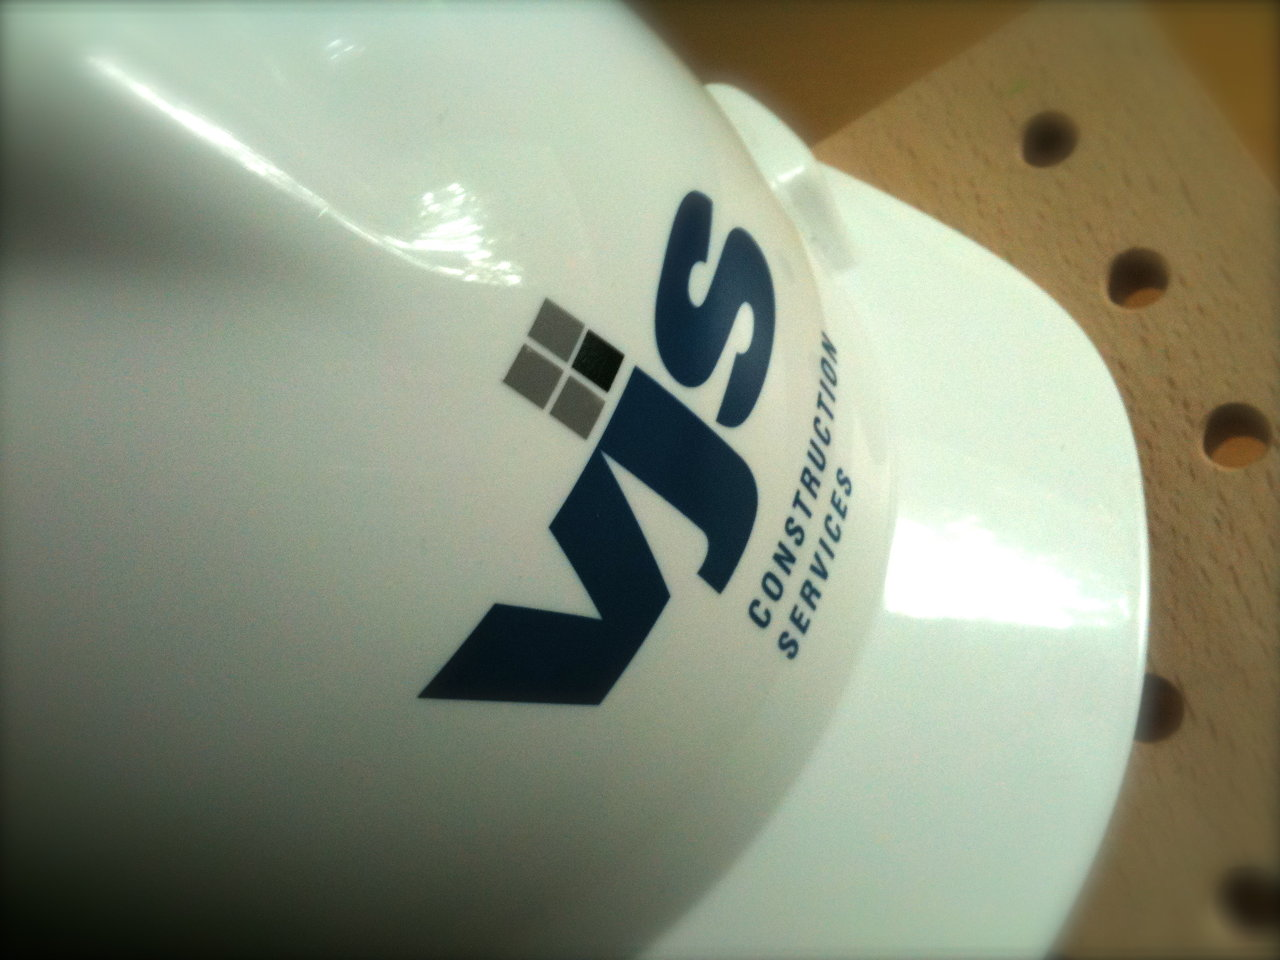 VJS Construction Services Branding